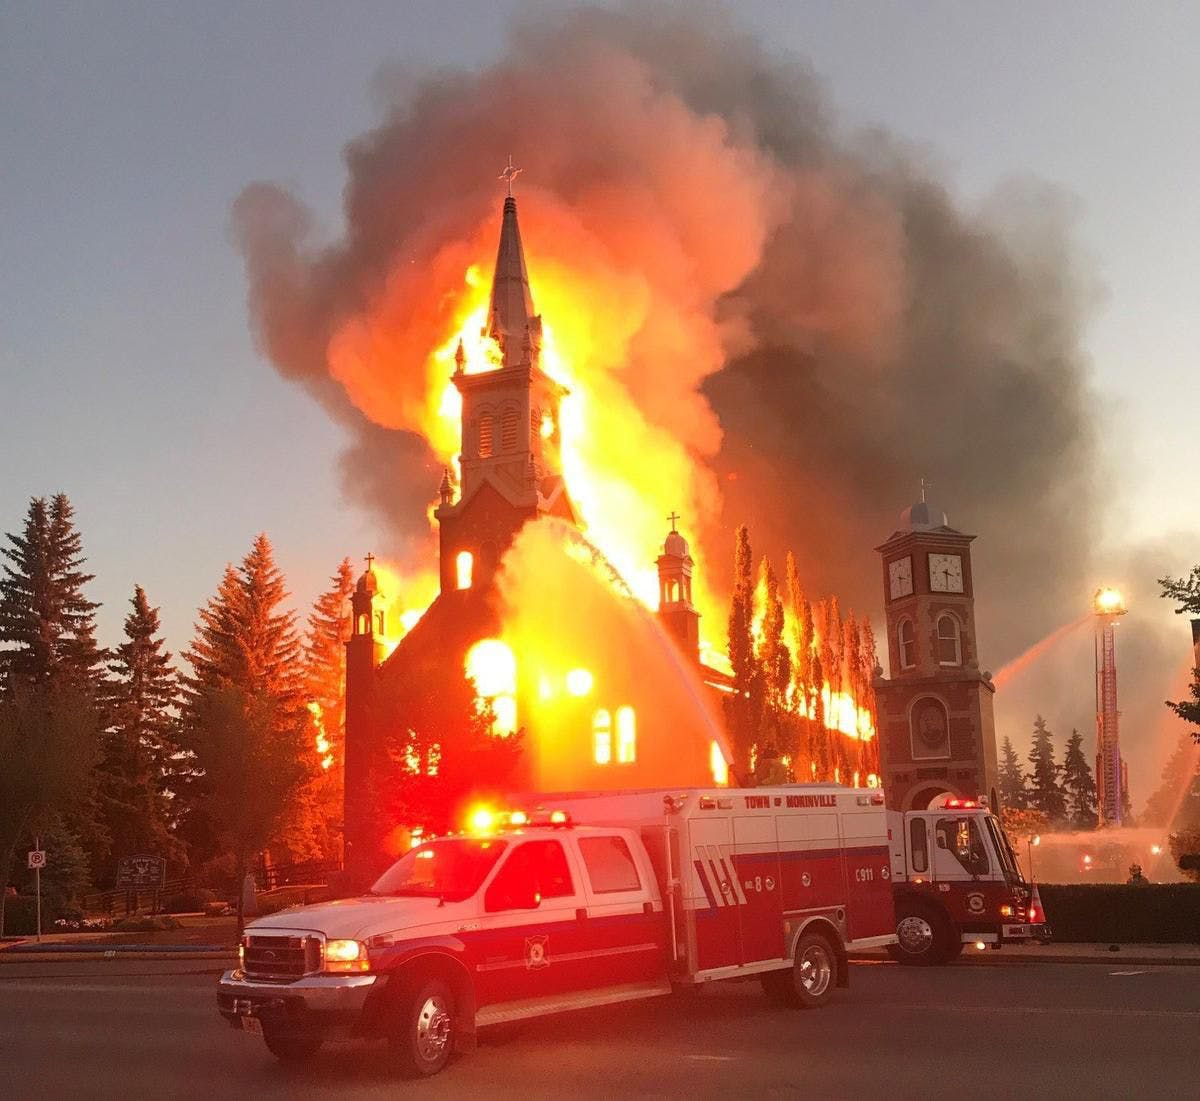 'Not in Solidarity With Us': Indigenous Leaders Call for Church Arsons to Stop